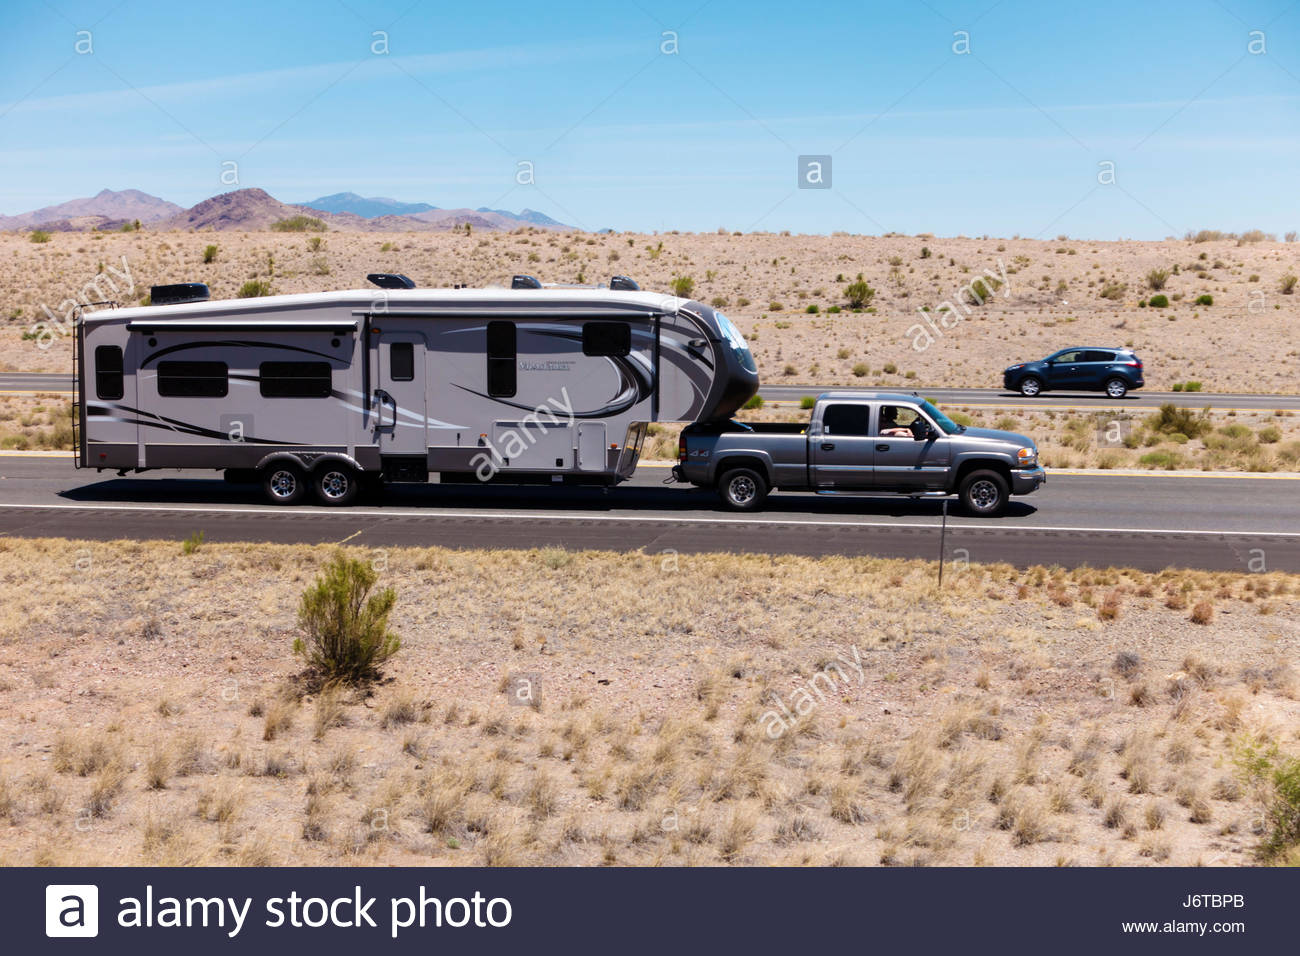 Pickup towing fifth wheel travel trailer on I-10 in southeastern Arizona 3 people visible - Stock-Bilder